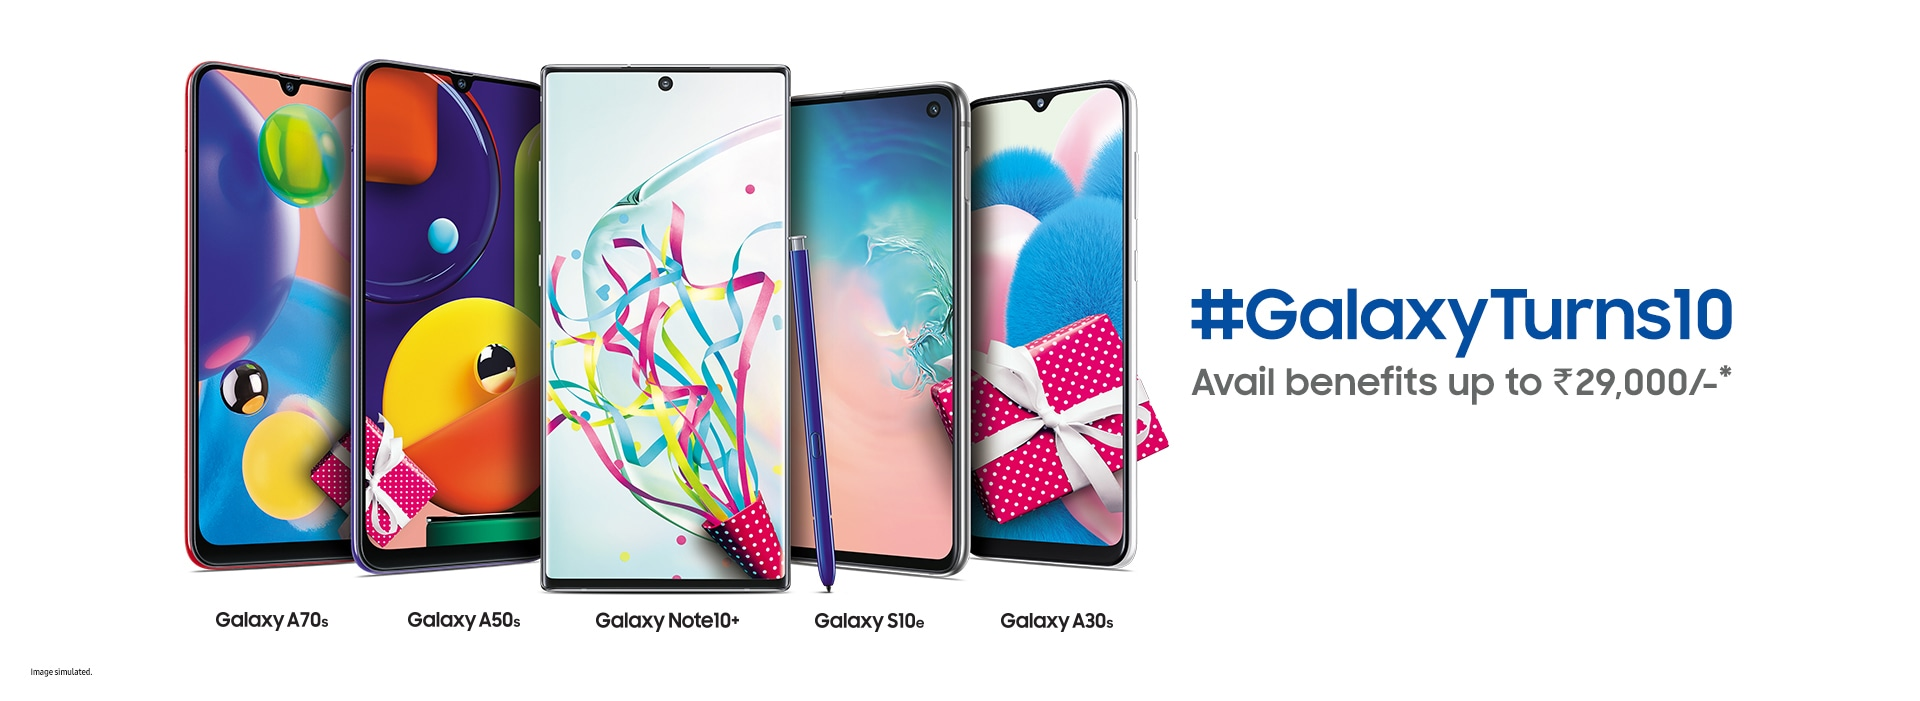 Galaxy Smartphone 10th Anniversary Offers